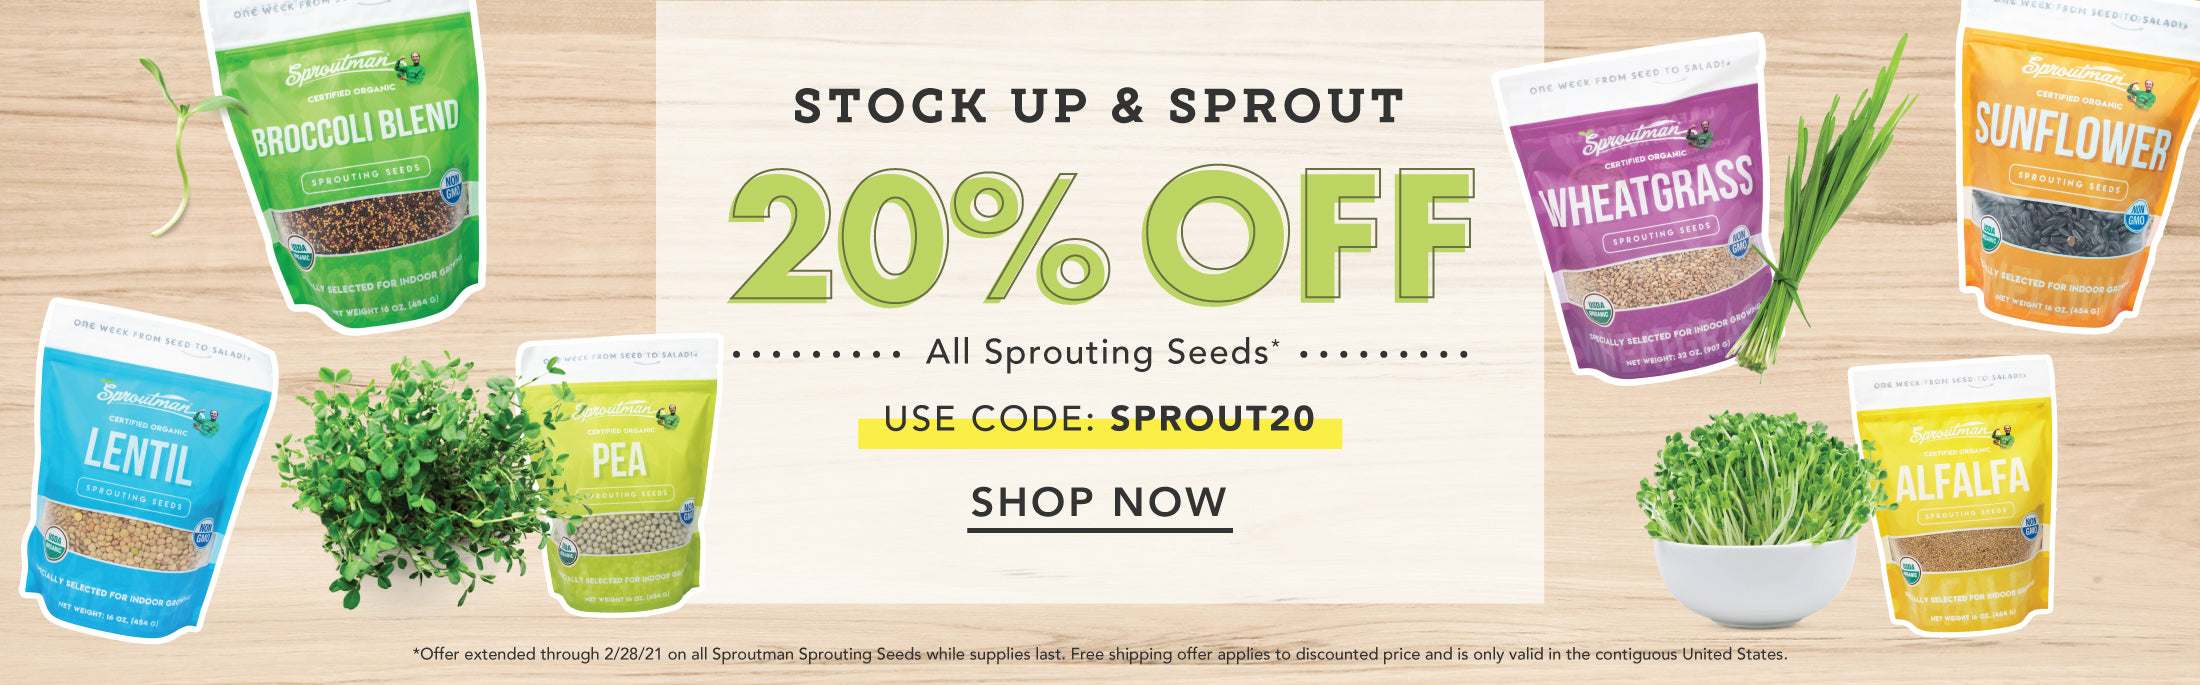 Save 20% on all Sproutman Sprouting Seeds thru 2/28/21 with code: SPROUT20